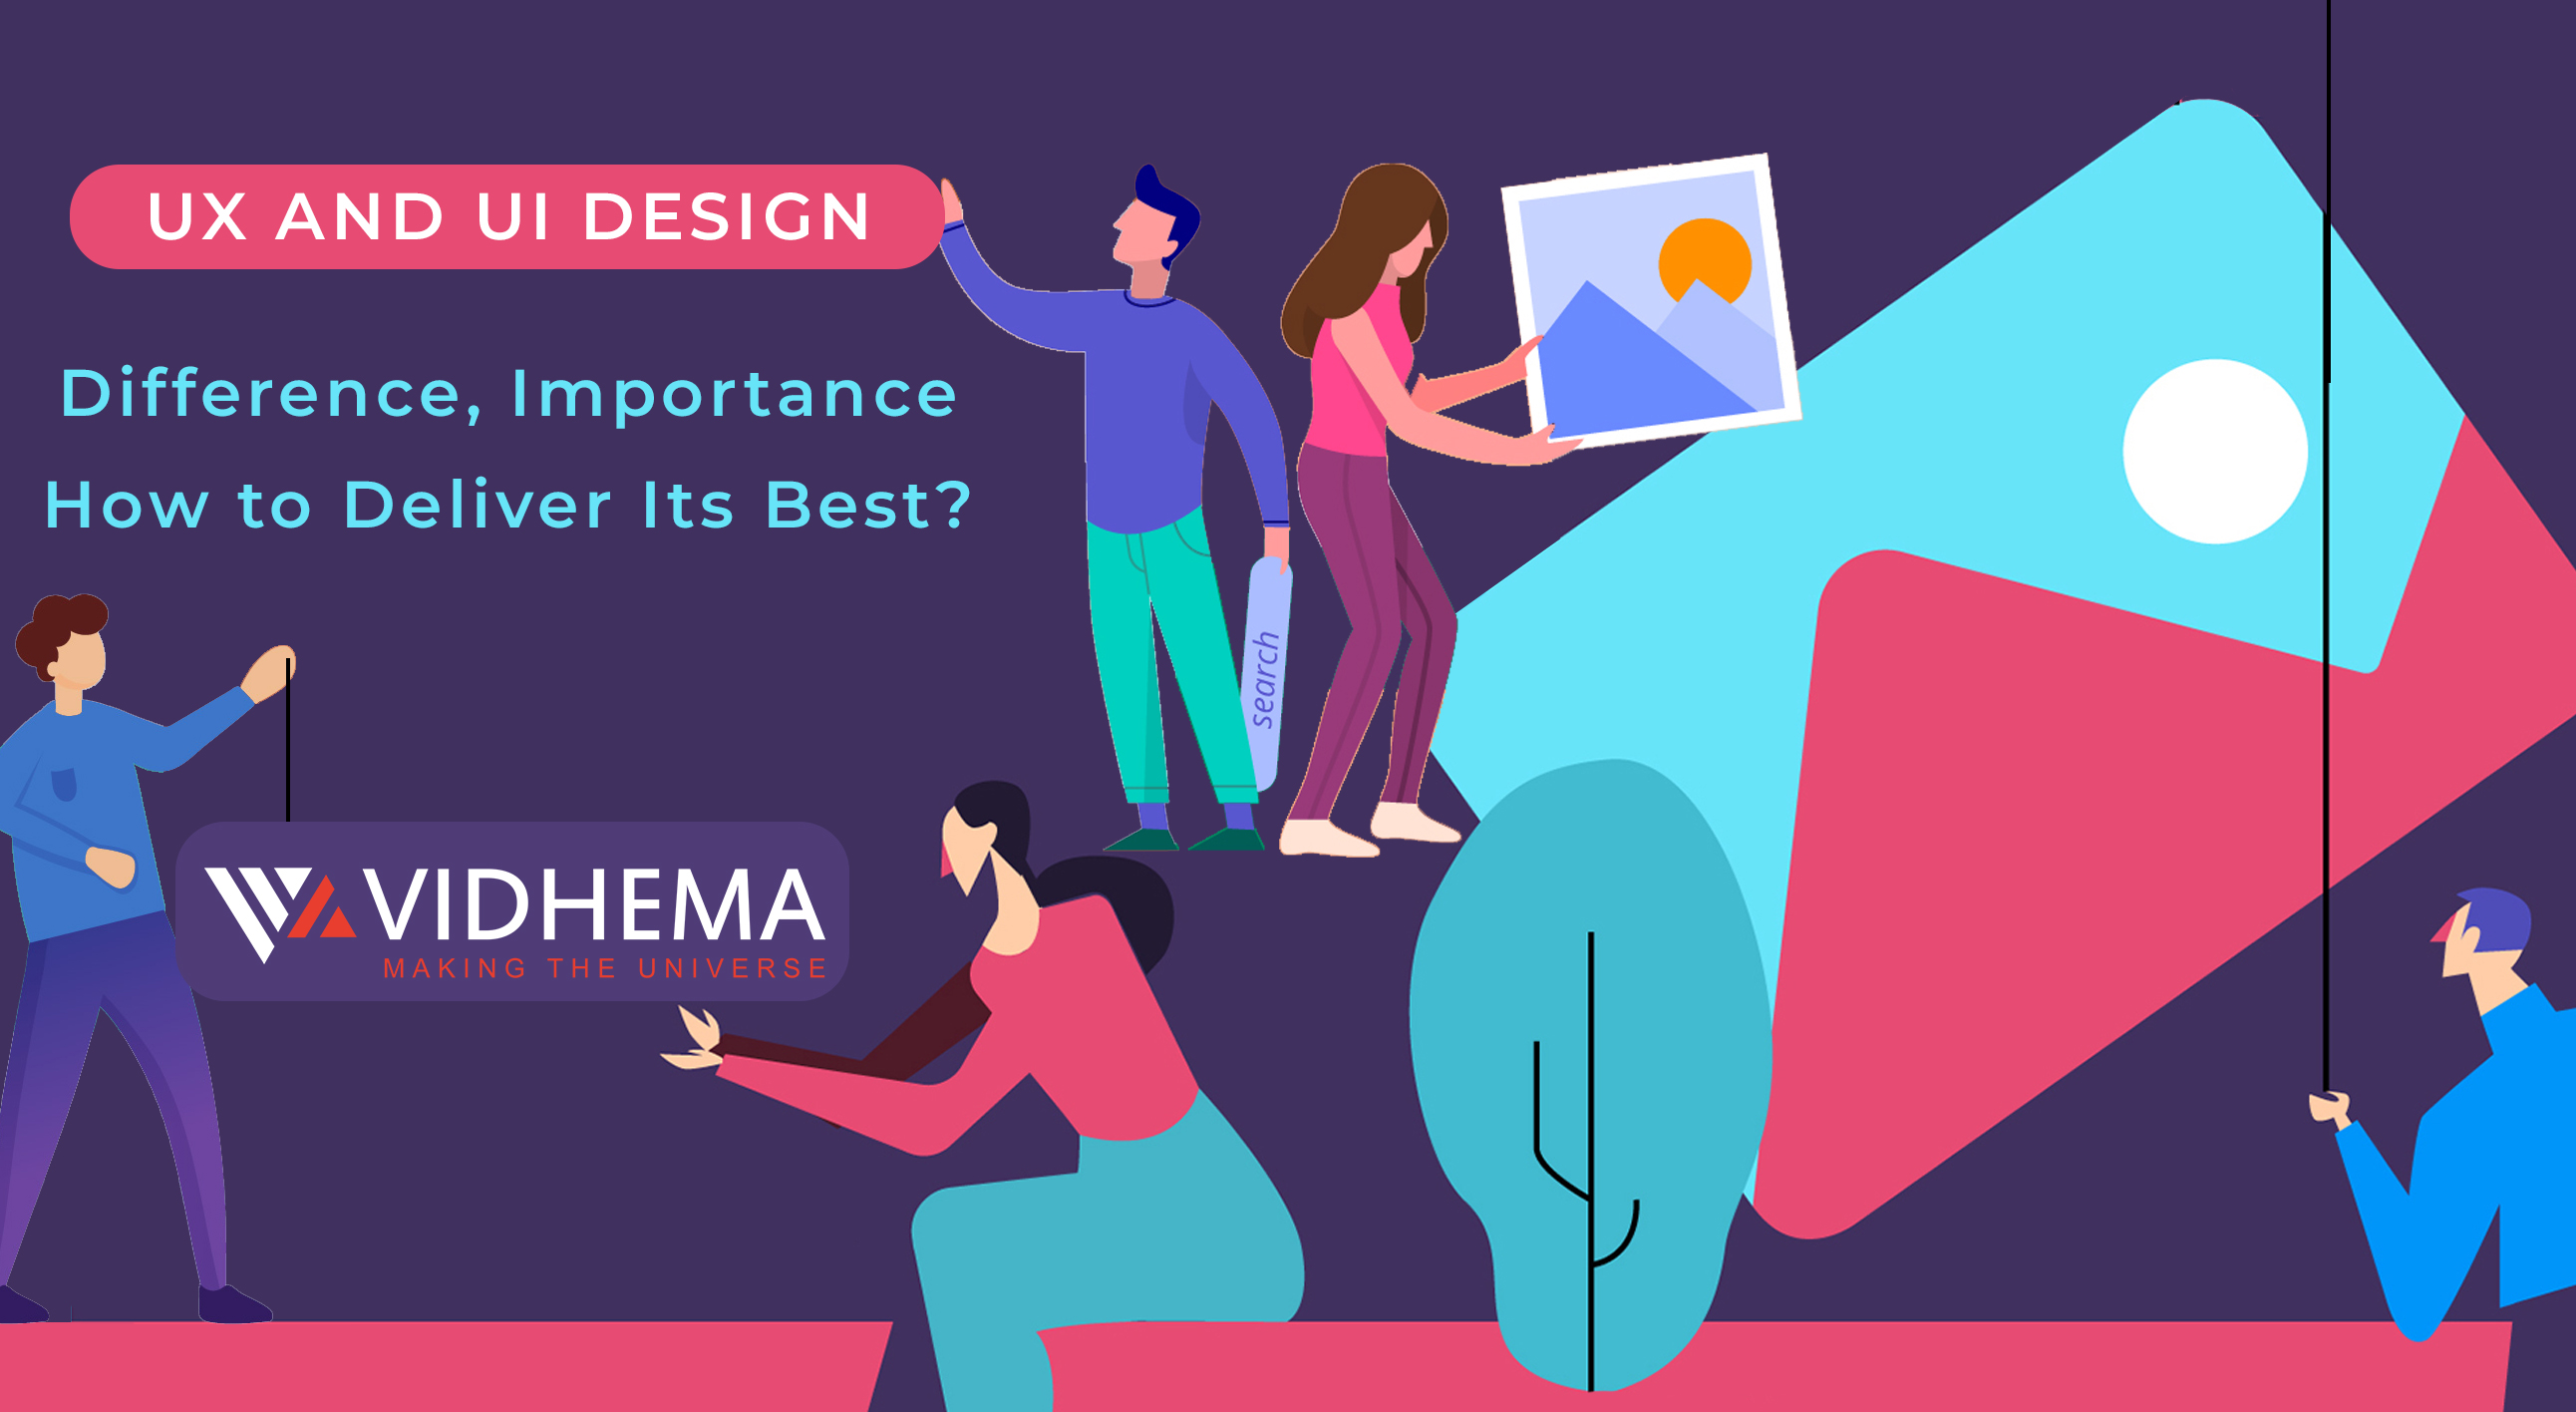 UX and UI Design- Difference, Importance, How to Deliver Its Best?